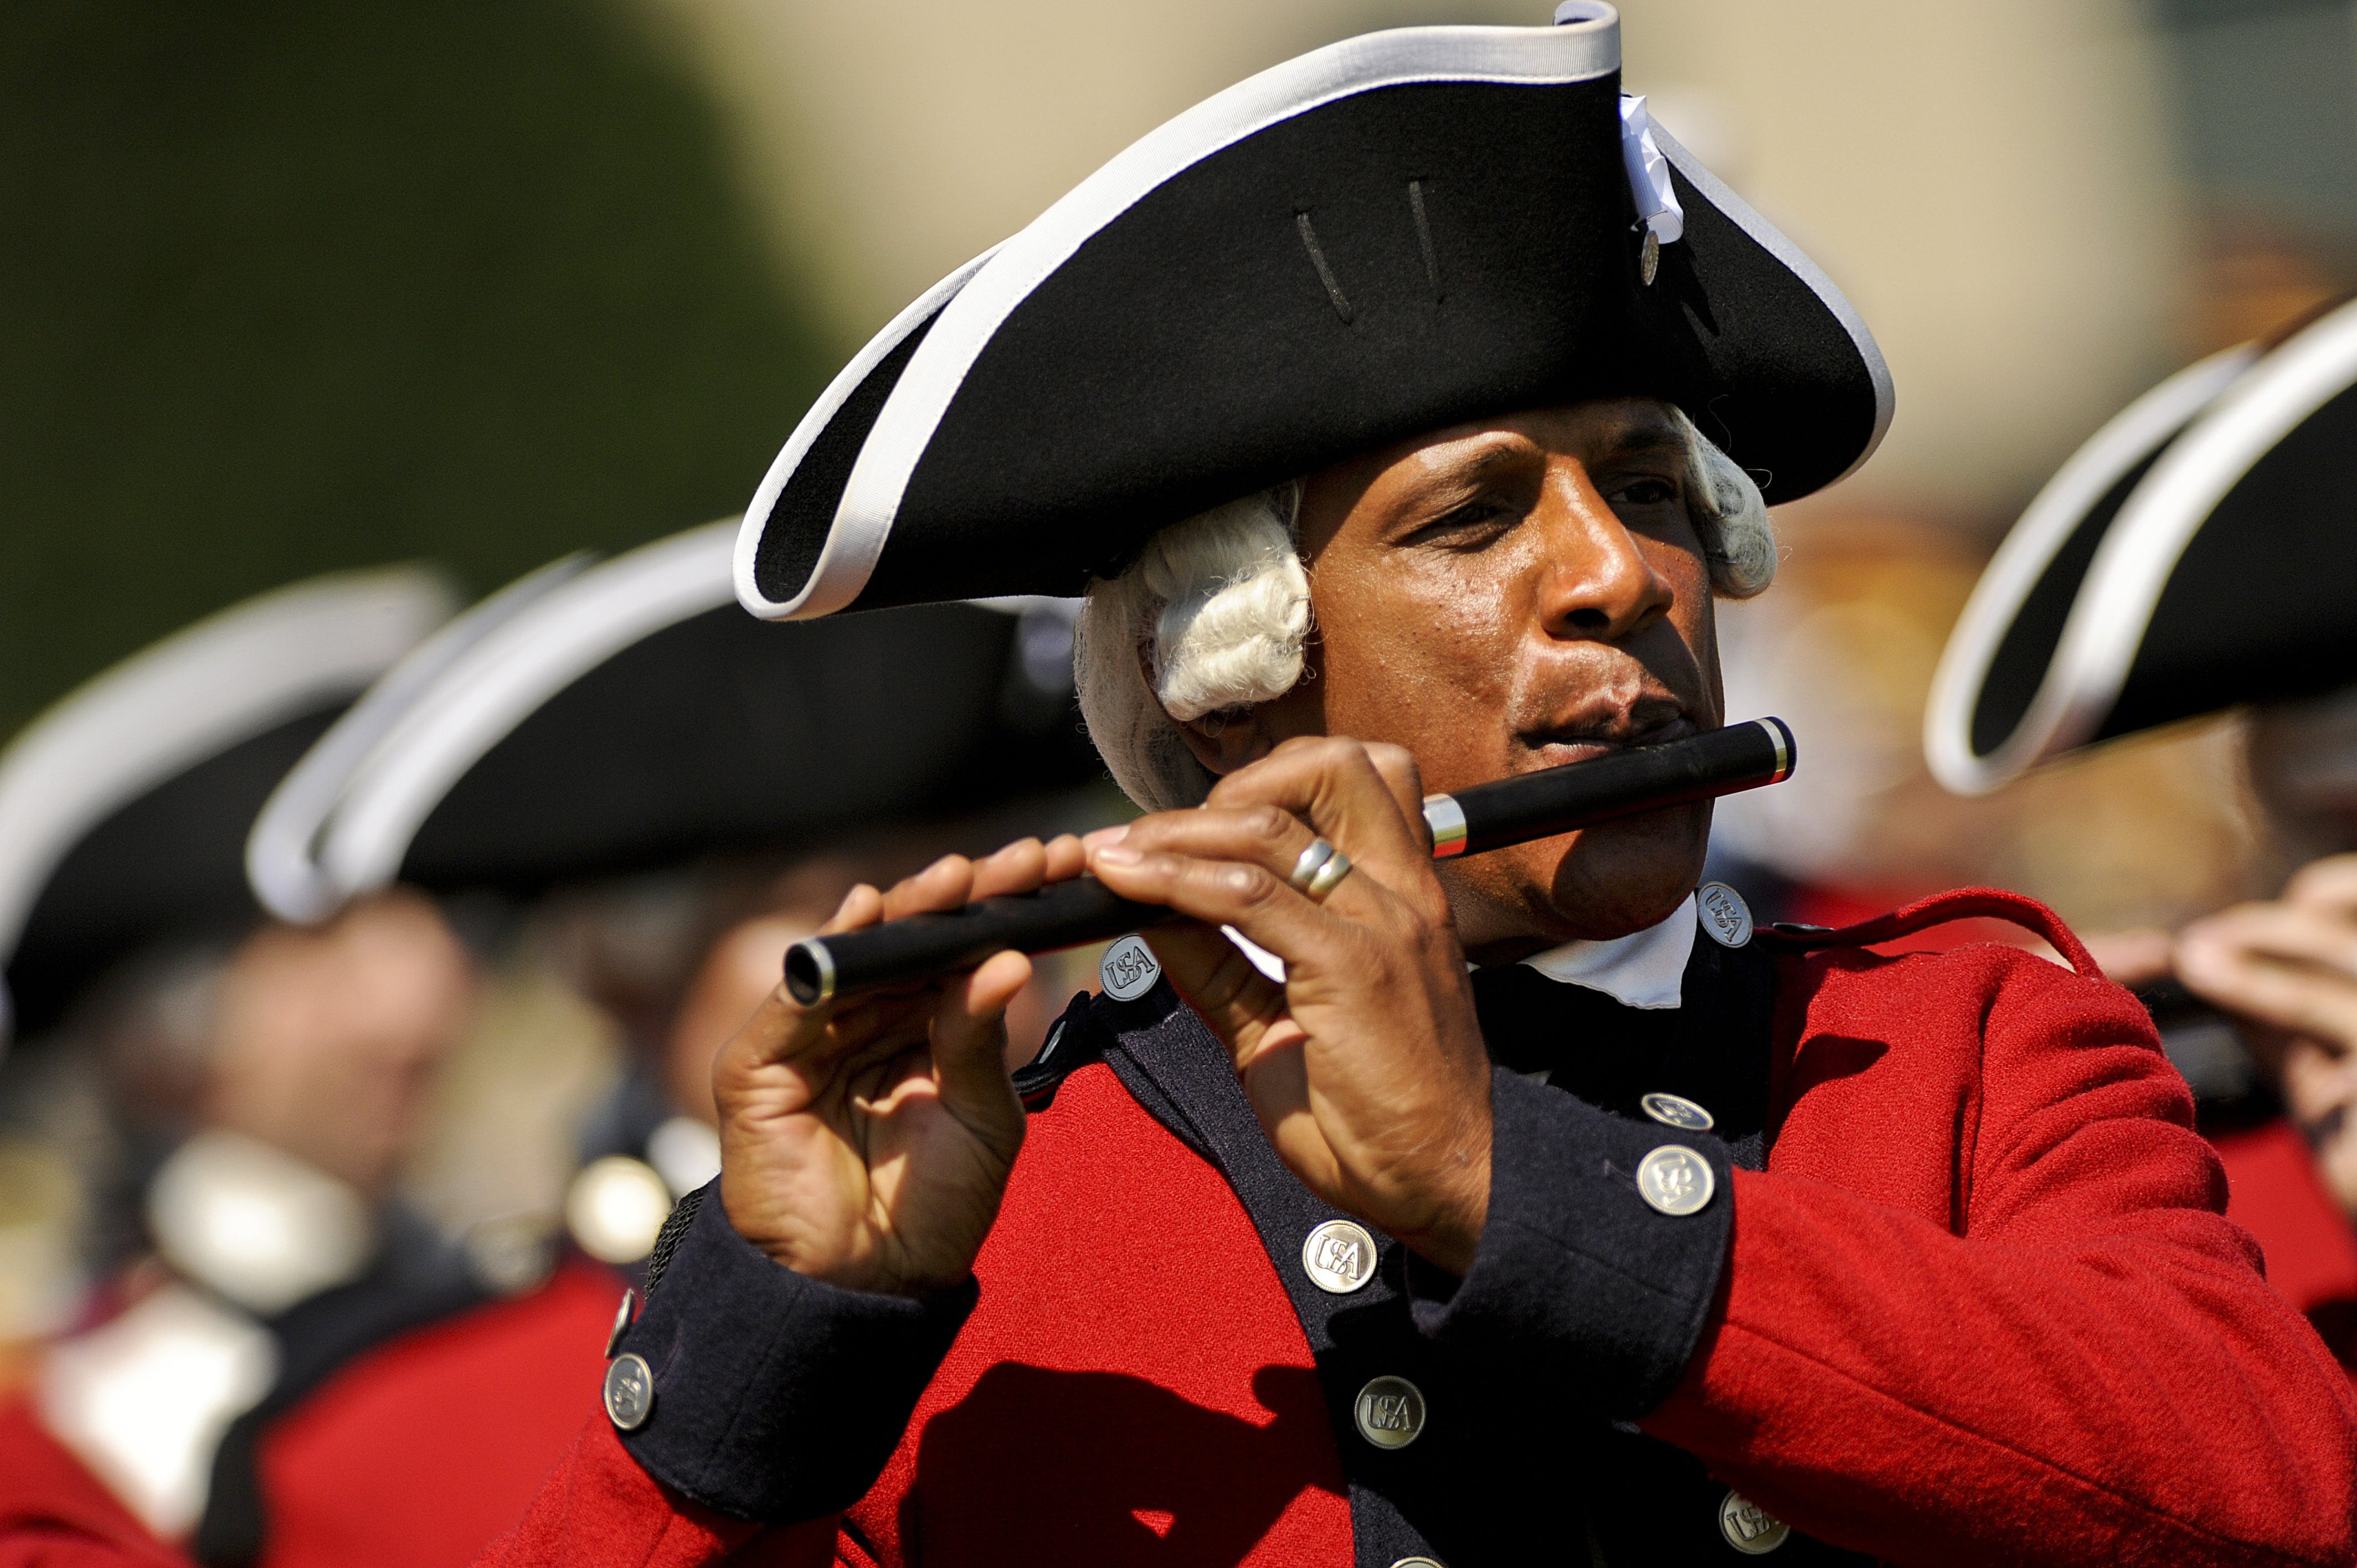 Man in Red and White Musical Suit Playing Flute during Daytime in Camera Focus Photography